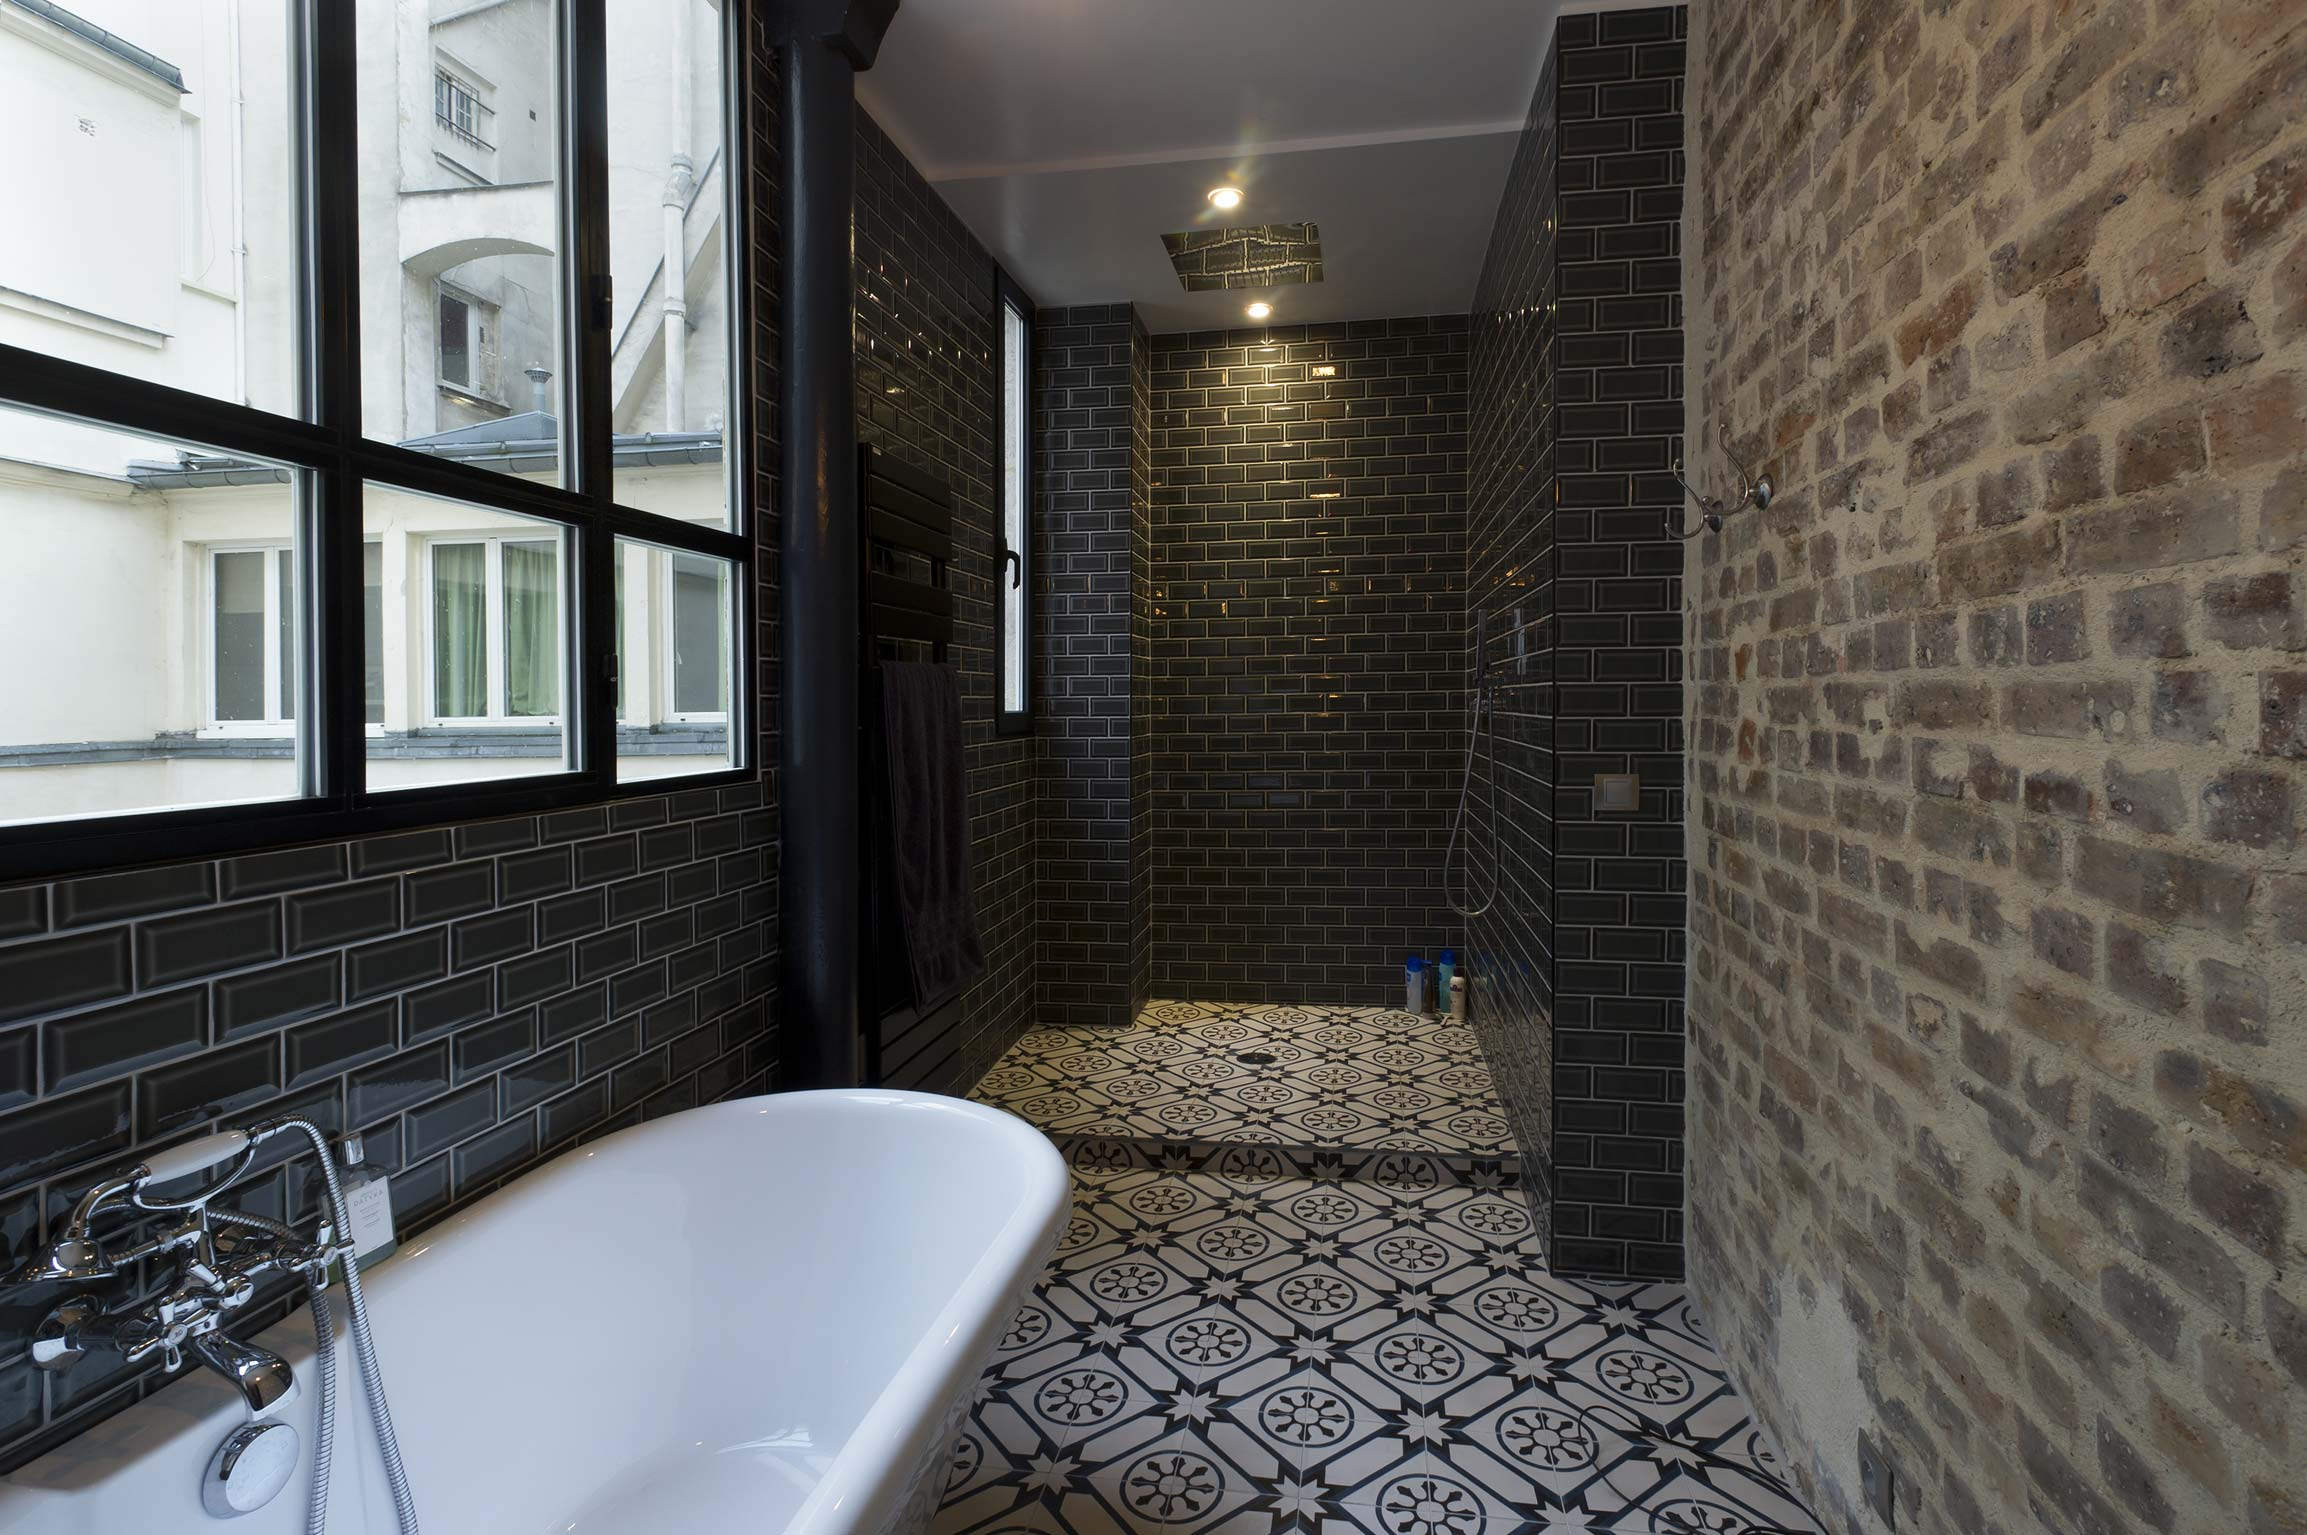 Douche l 39 italienne en carreau de ciment for Carrelage grand carreau salle de bain